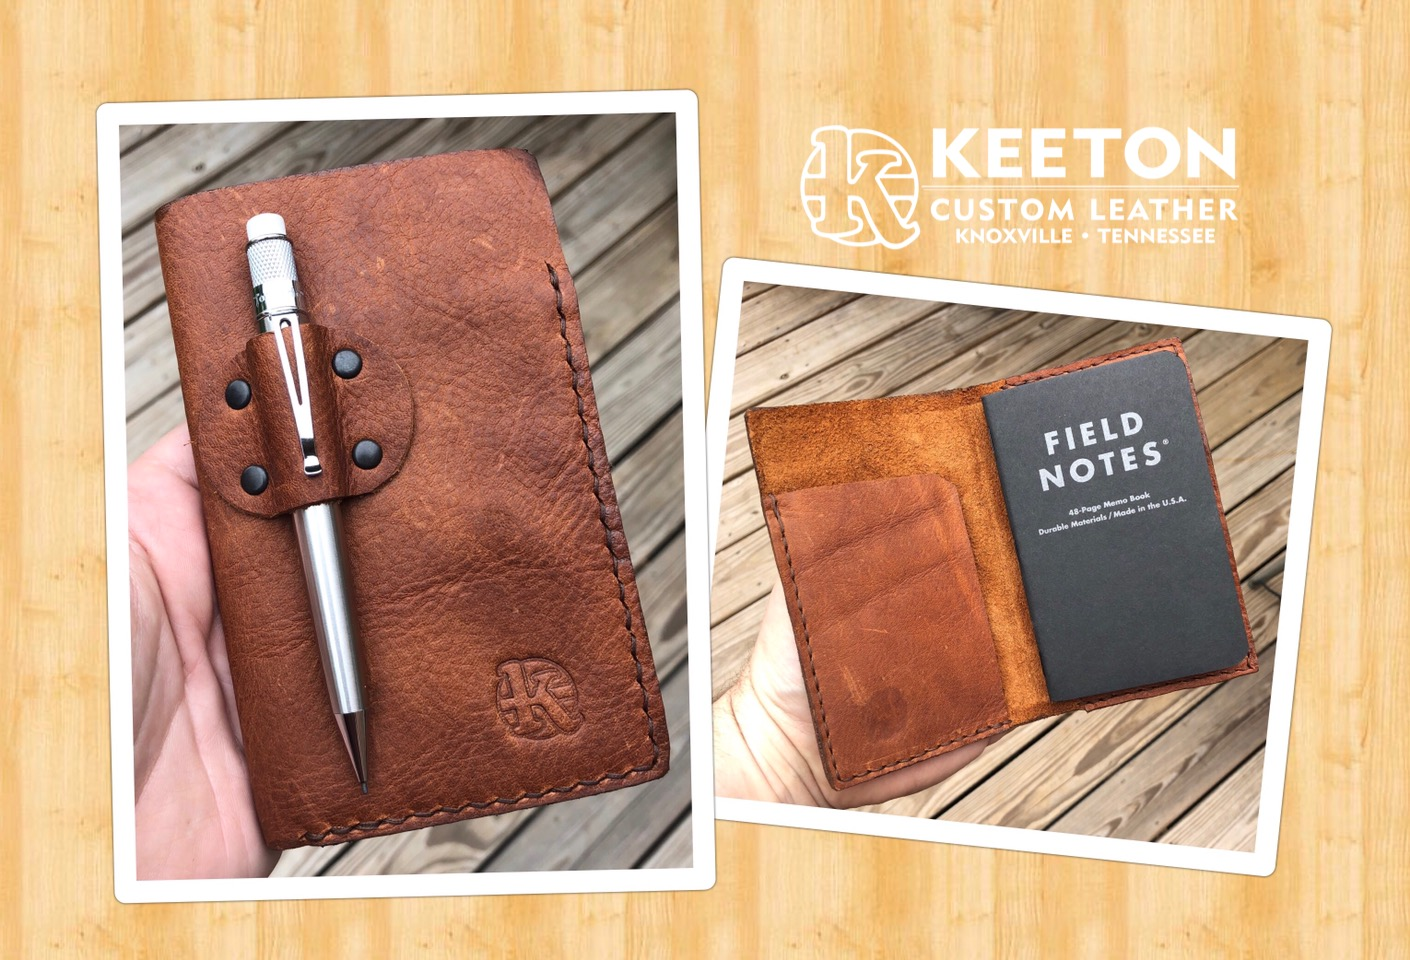 Keeton Custom Leather 1.jpeg